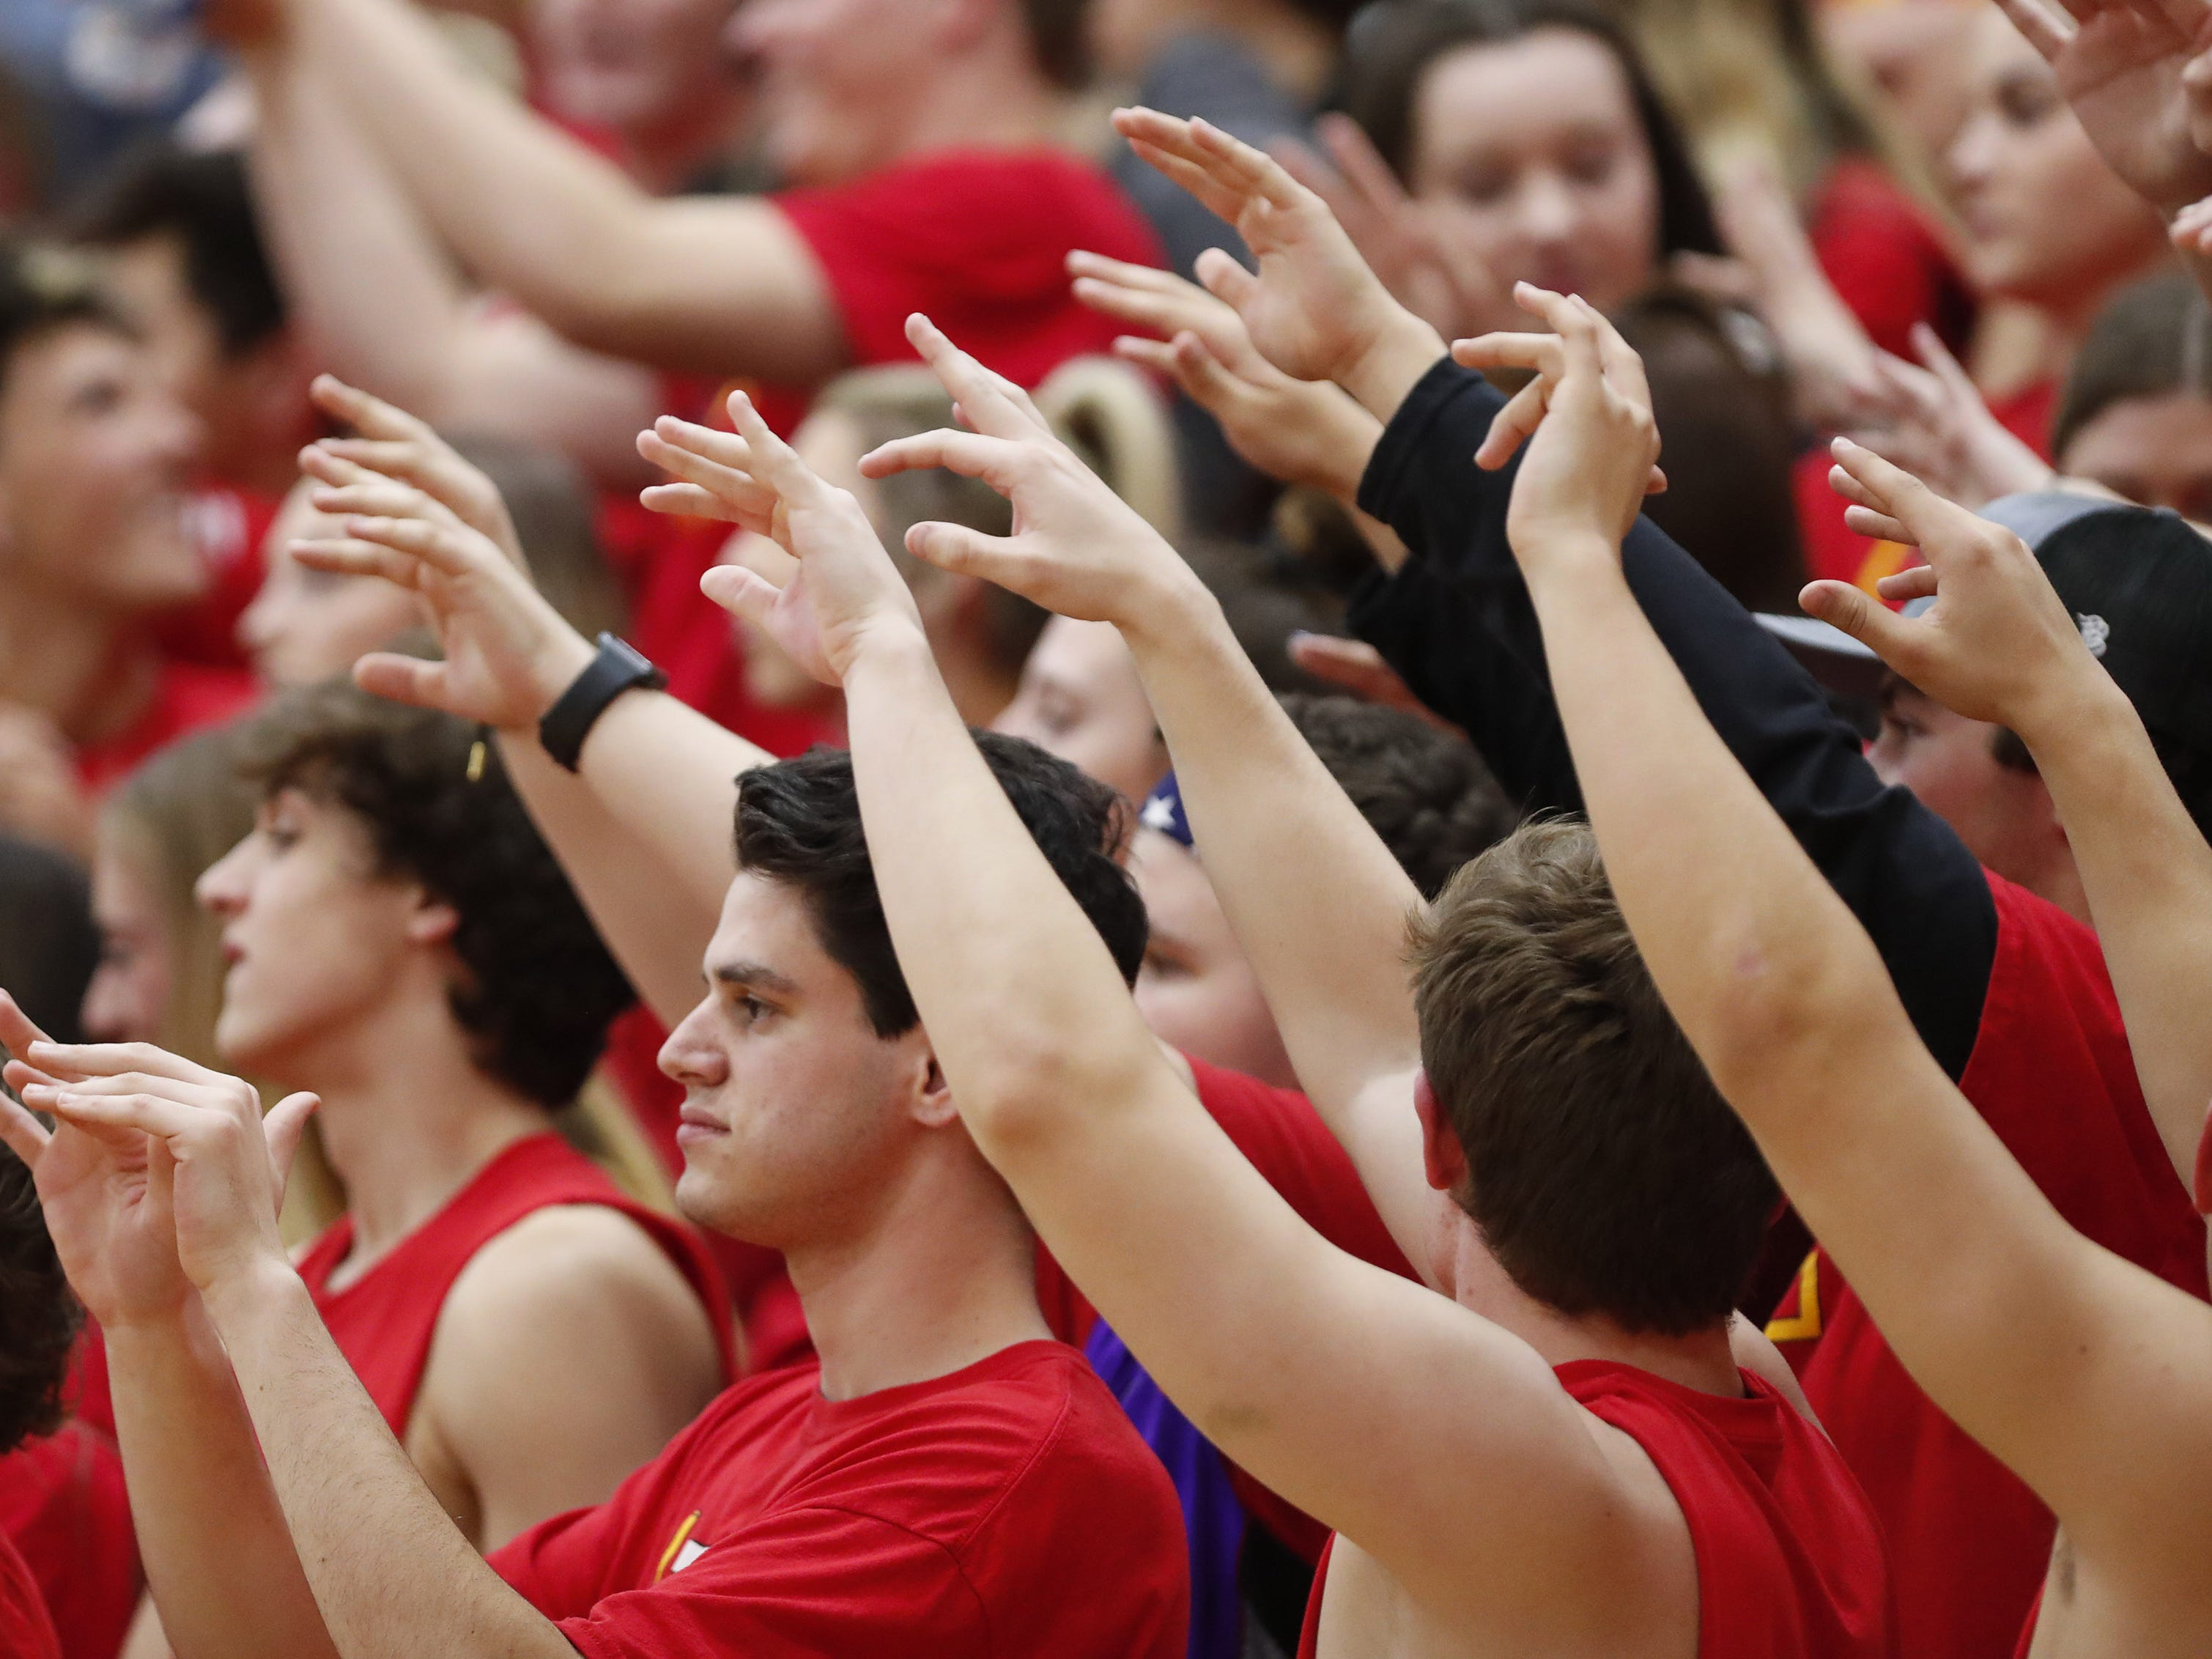 Chaparral students hold their hands up during a free throw against Pinnacle in Scottsdale January 15, 2019.